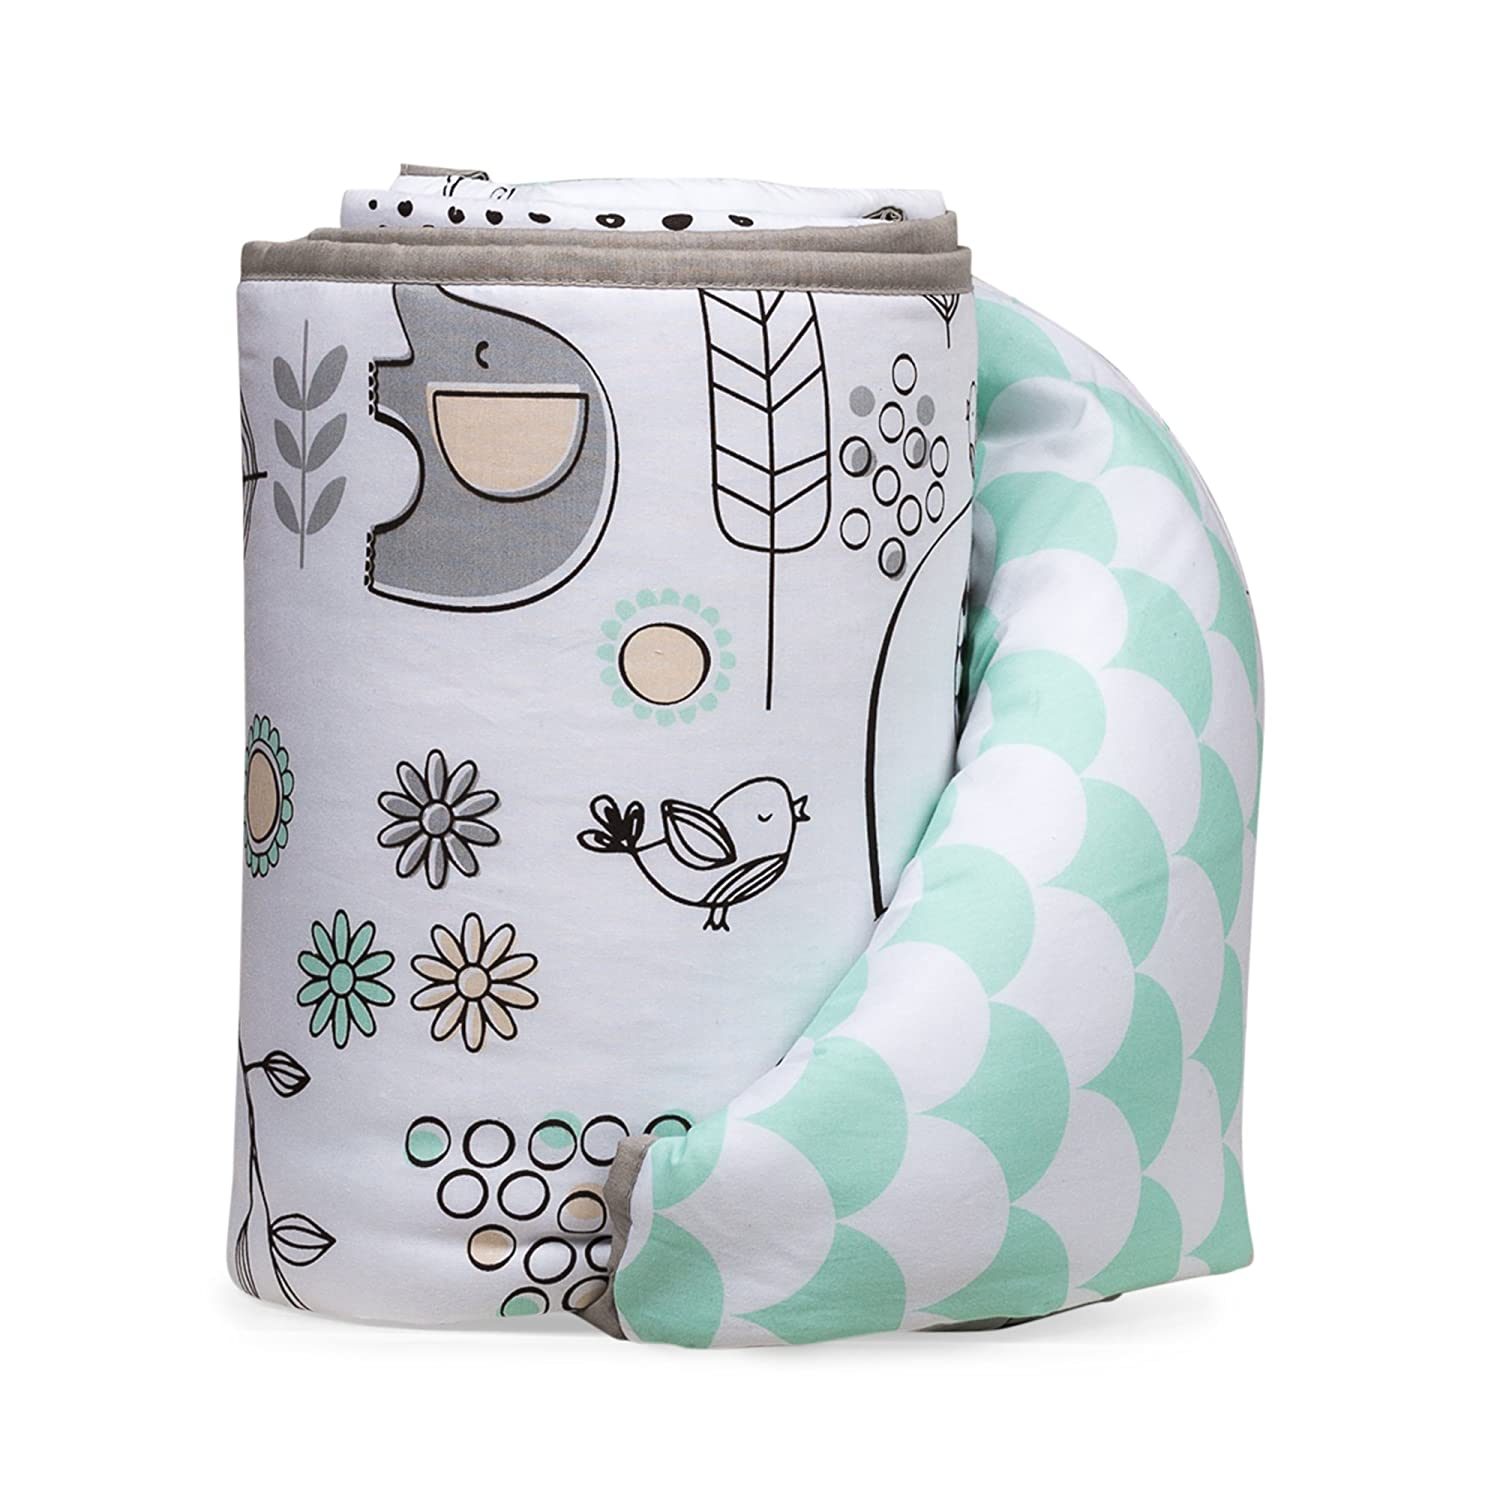 Lolli Living Elle Elephant Crib Bumper with Reversible Mint Scallop SG/_B07653X6JK/_US 100/% Cotton Baby Crib Liner Kayden Collection